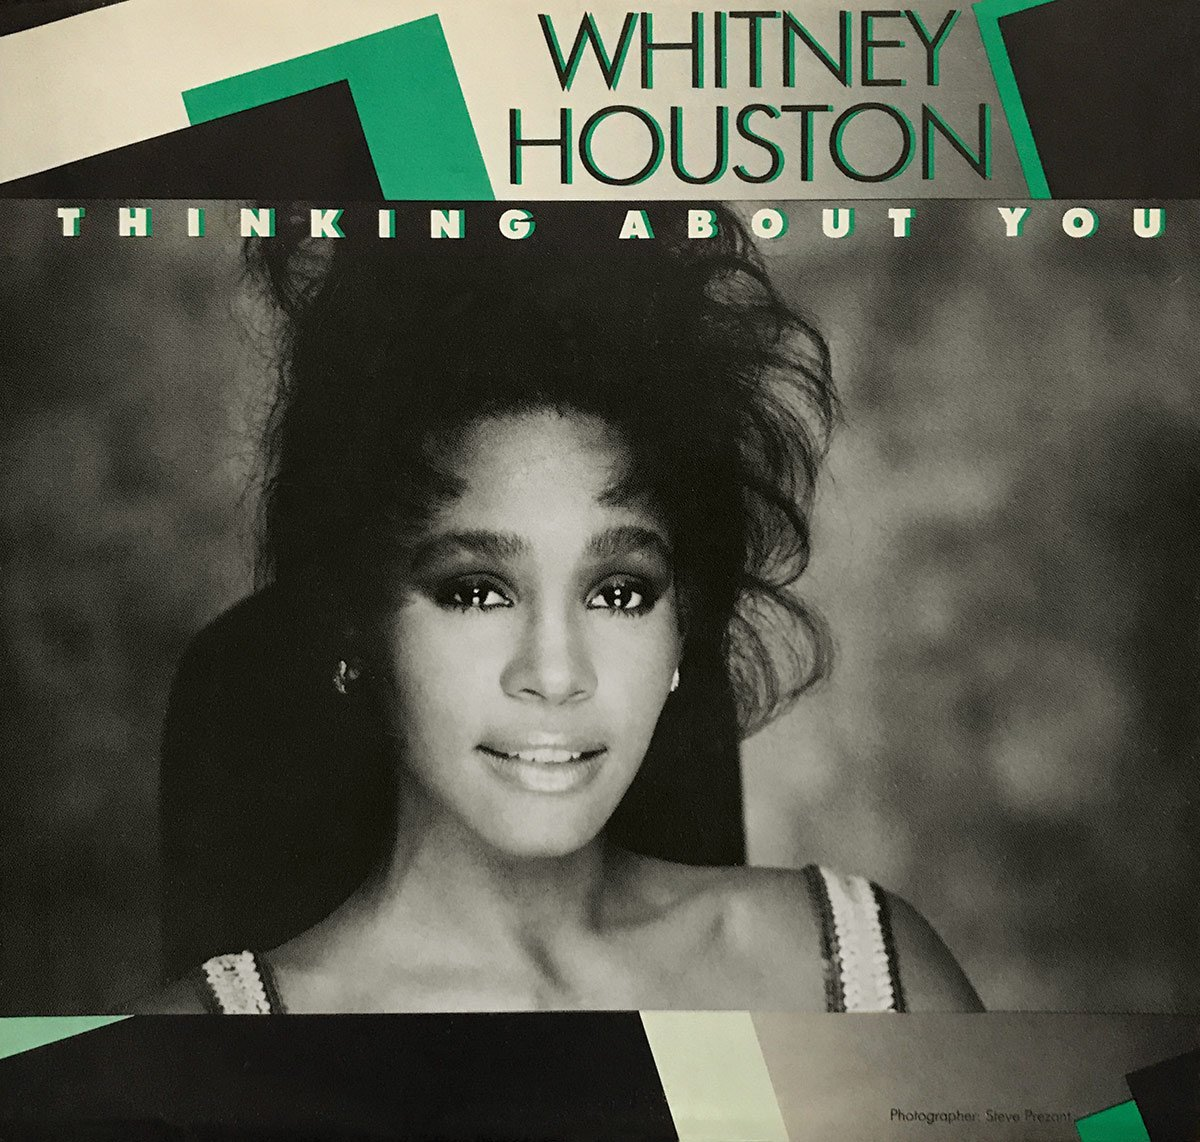 Whitney Houston - Thinking About You U.S. 7-inch vinyl single front cover